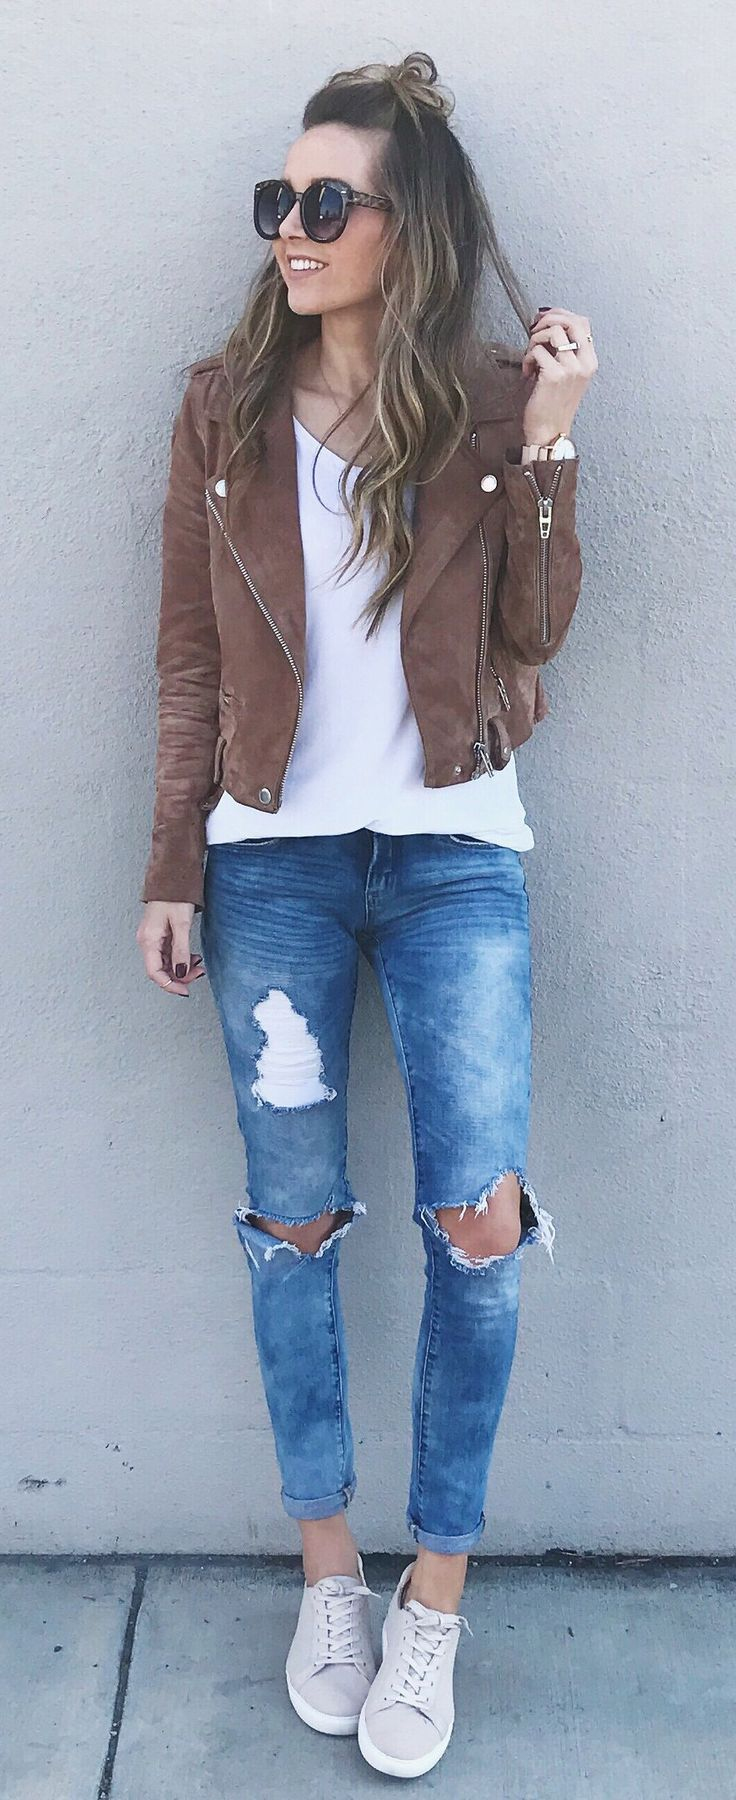 Brown Suede Jacket / White Tee / Destroyed & Ripped Denim / Grey Sneakers